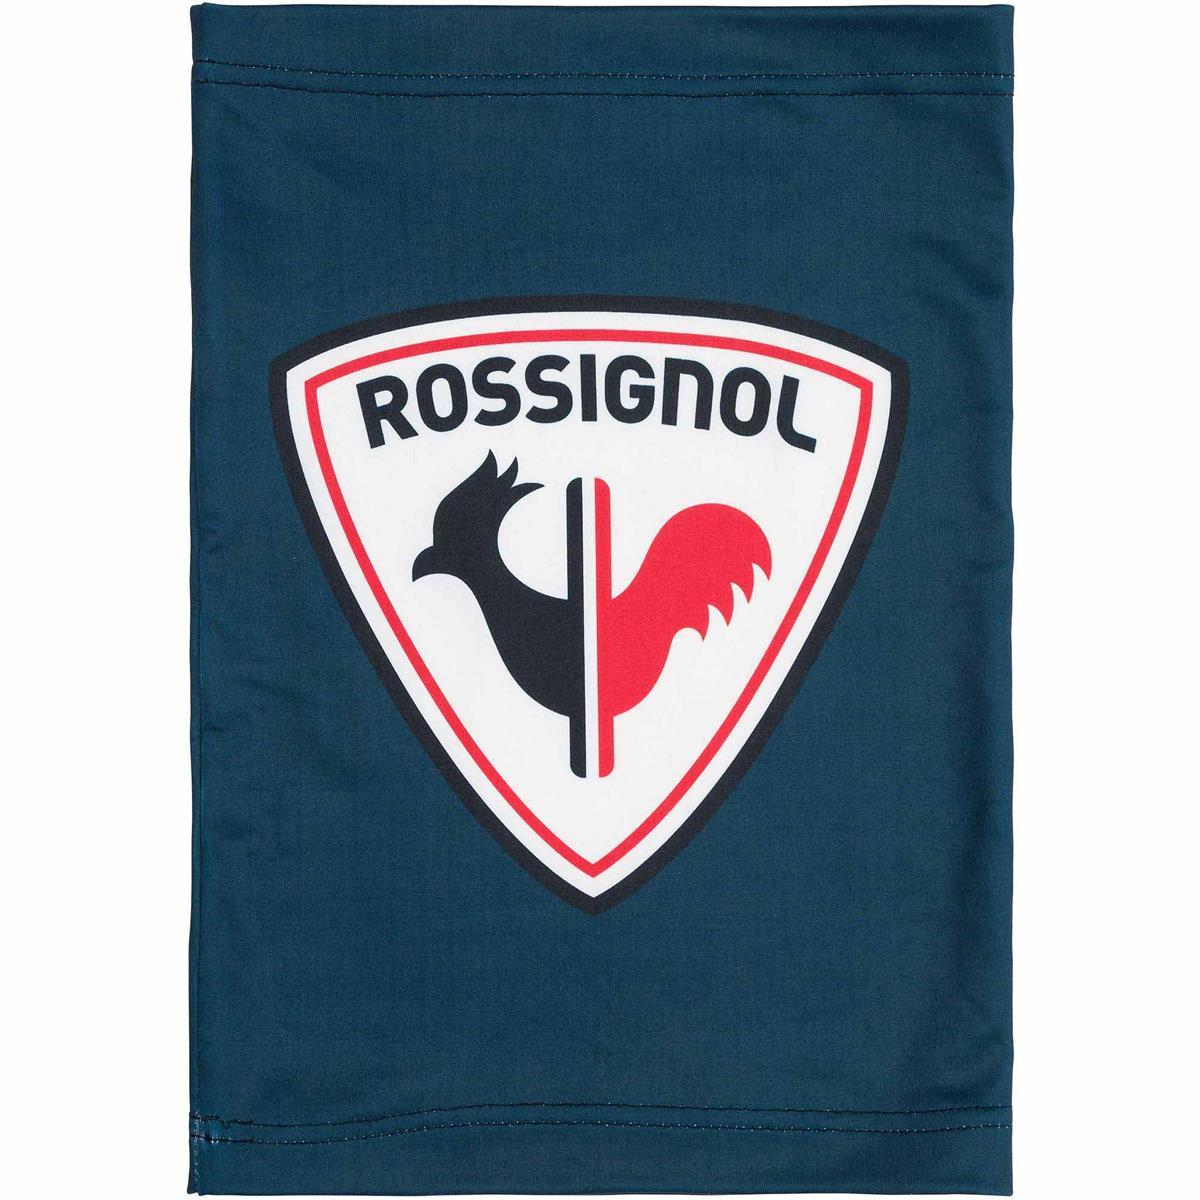 Rossignol Apparel Rooster Warm Neck X3